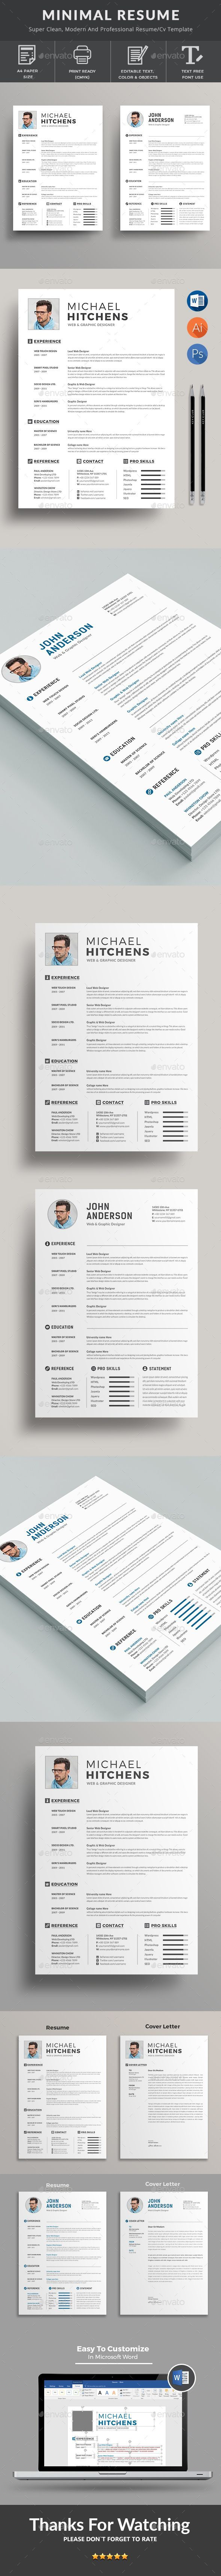 best resume examples professional%0A  Resume Templates is the super clean  The flexible page designs are easy to  use